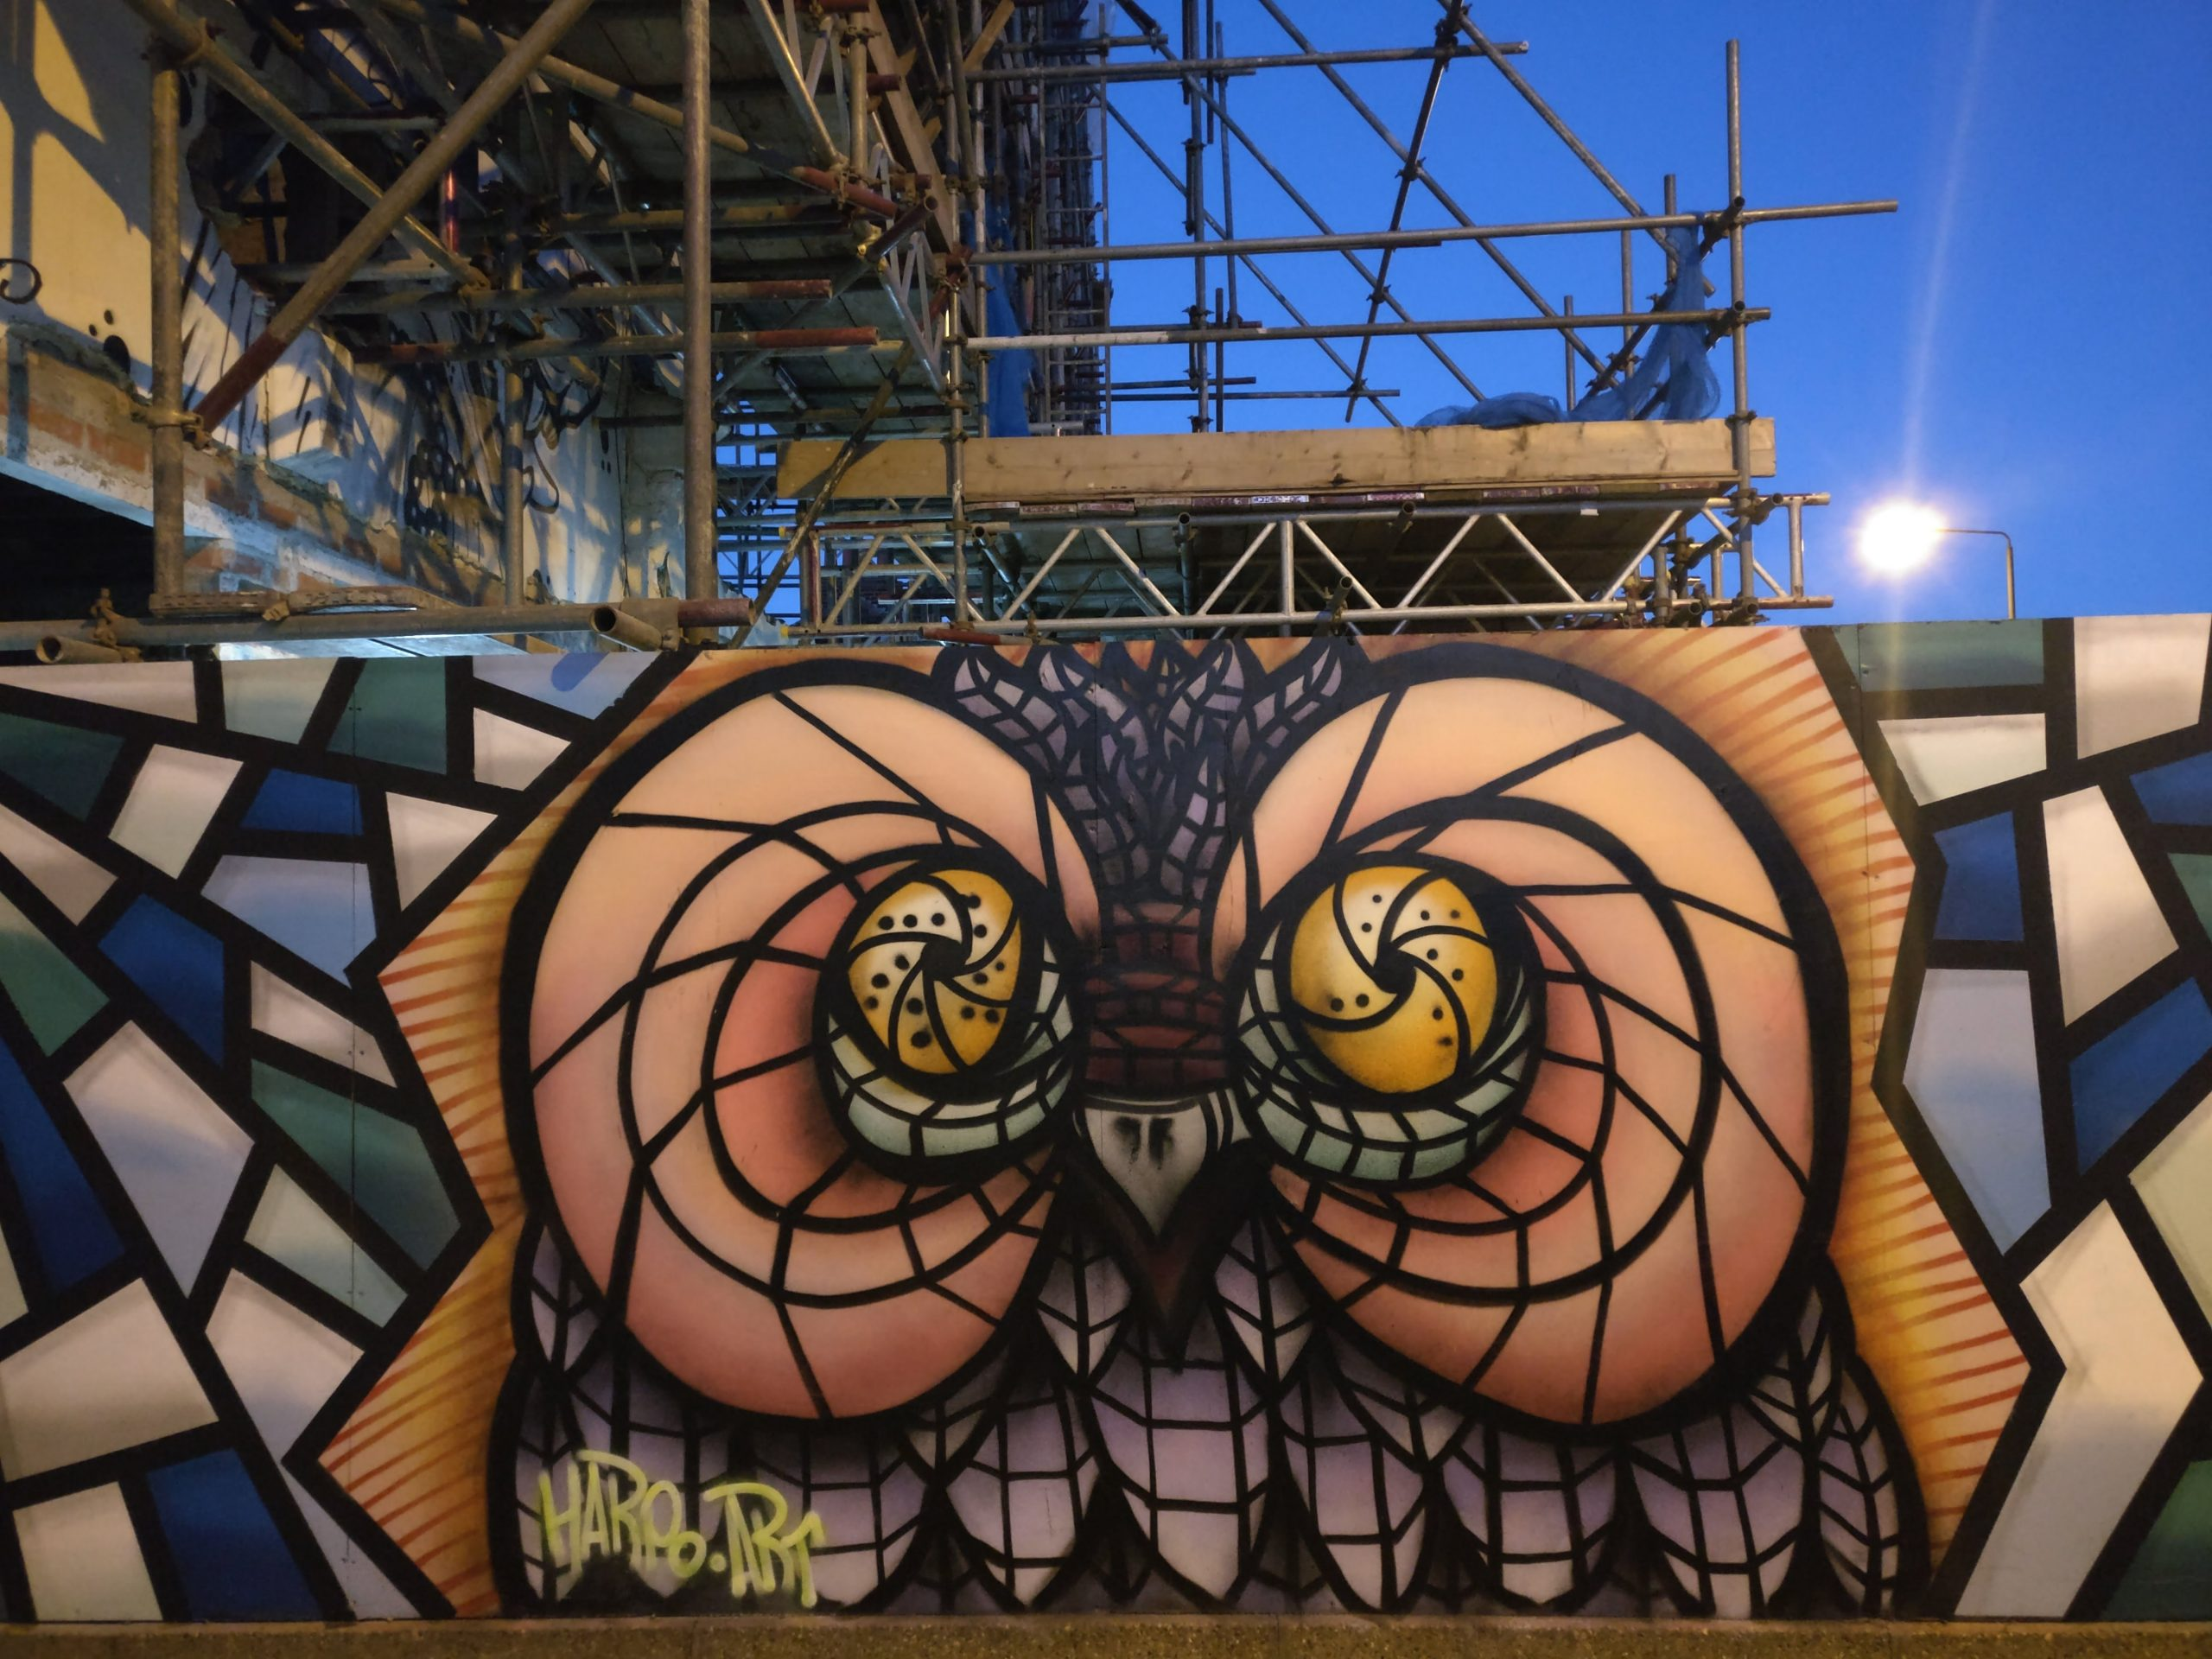 As has become now a bit of a tradition our pals at london calling once again organised a street art paint jam to celebrate not only the new year but also